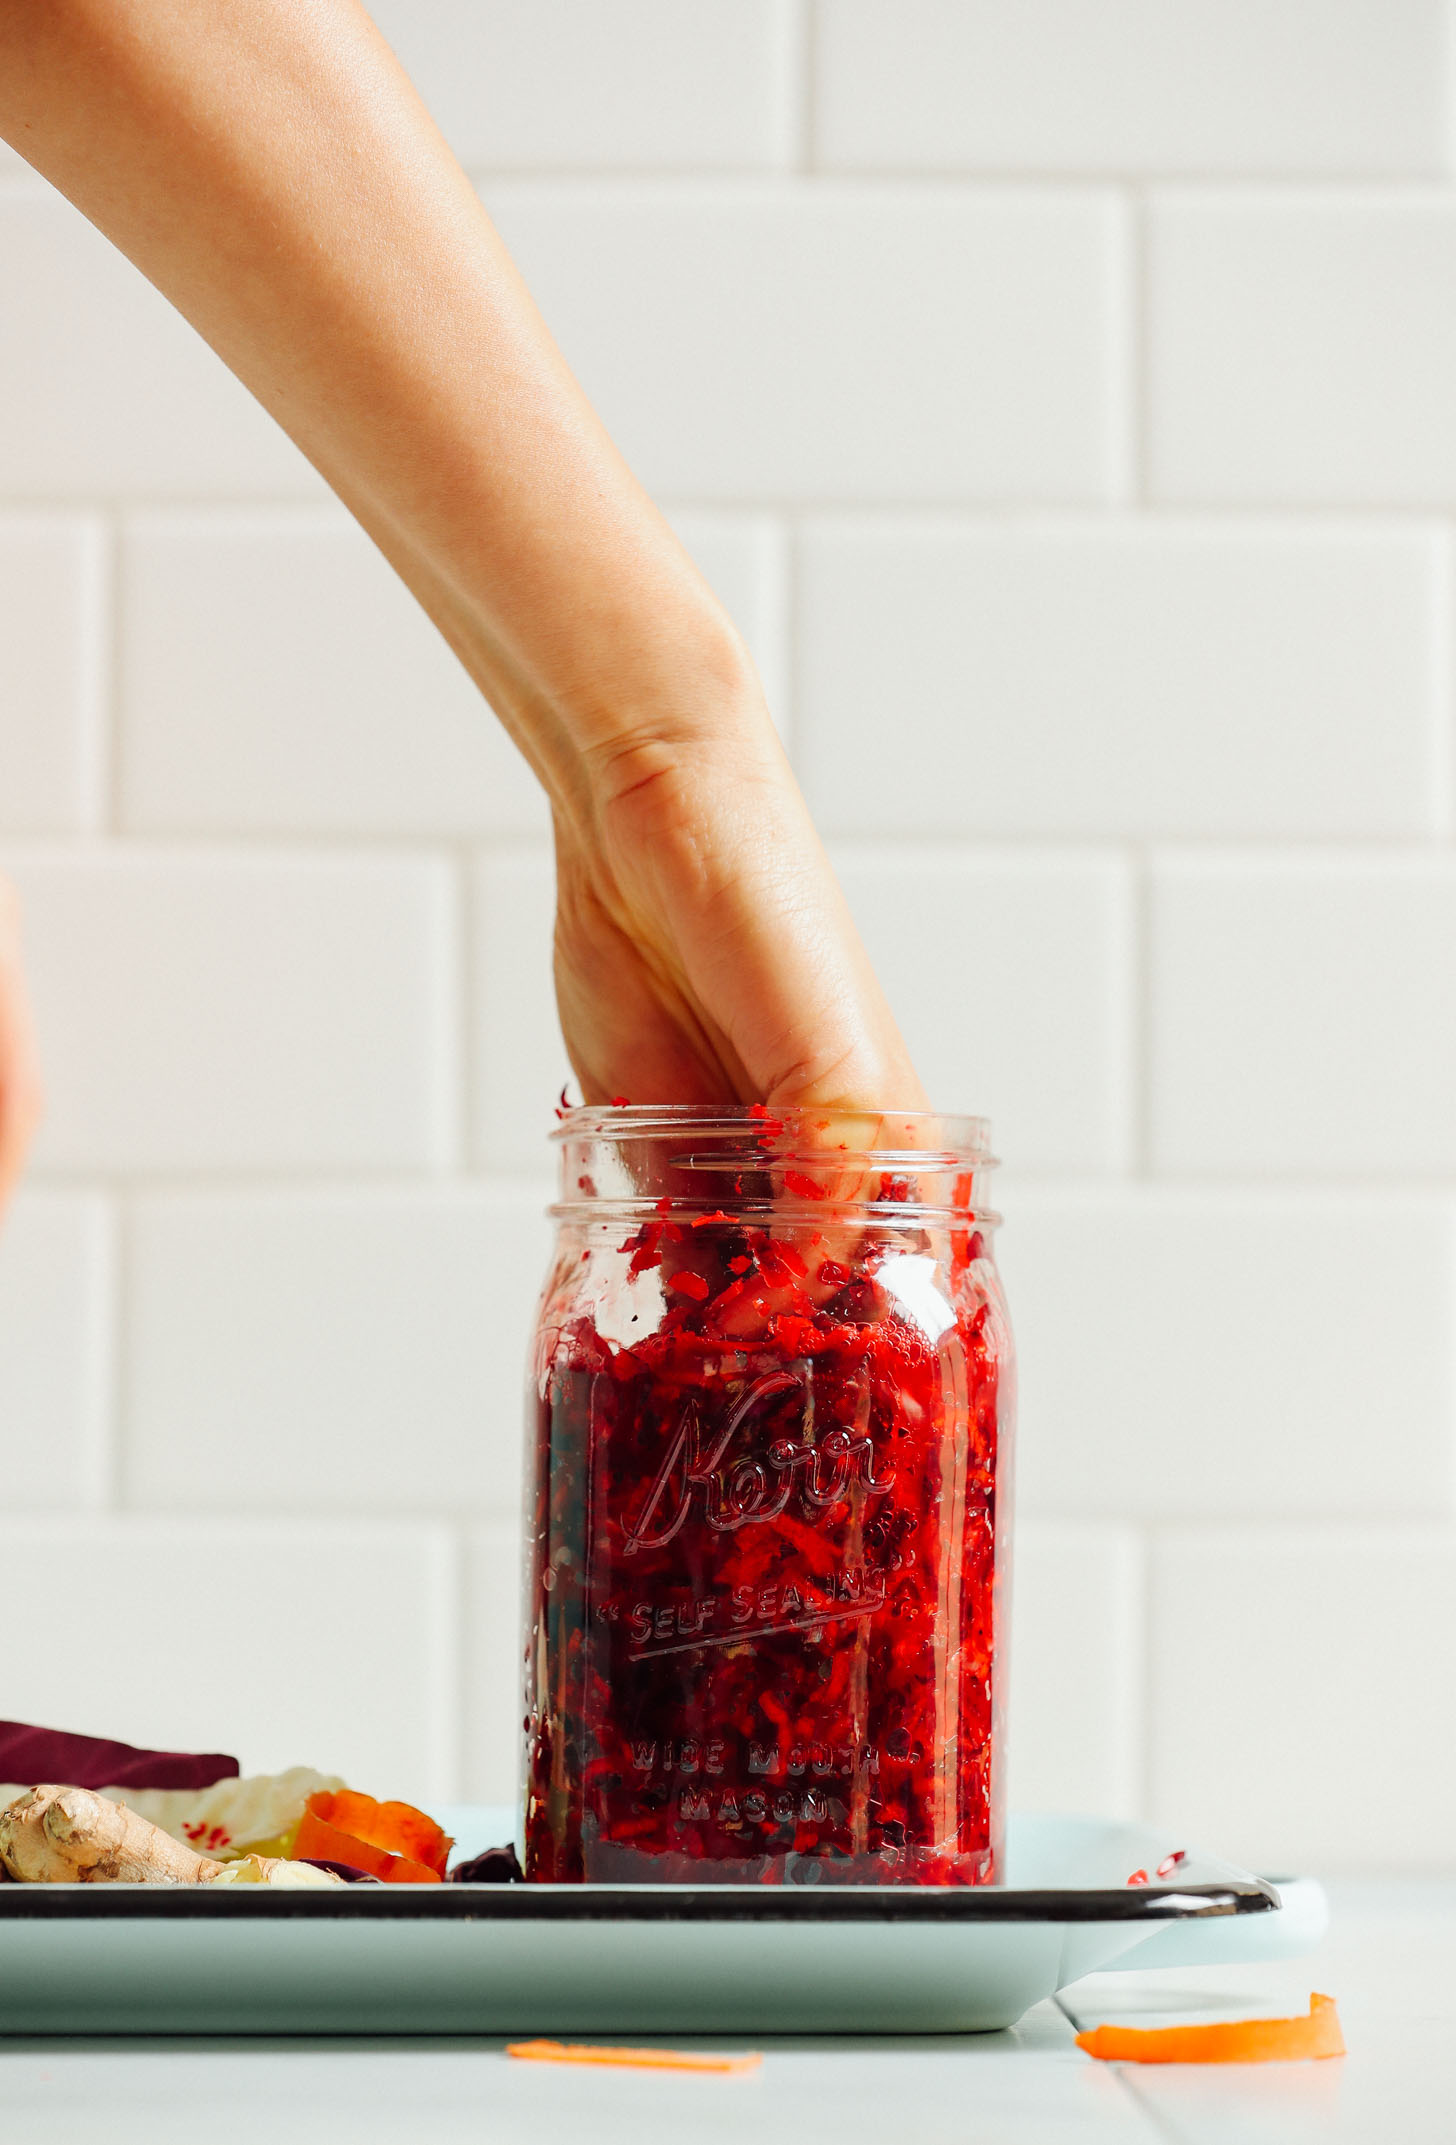 Pressing down on the vegetables inside a jar of sauerkraut